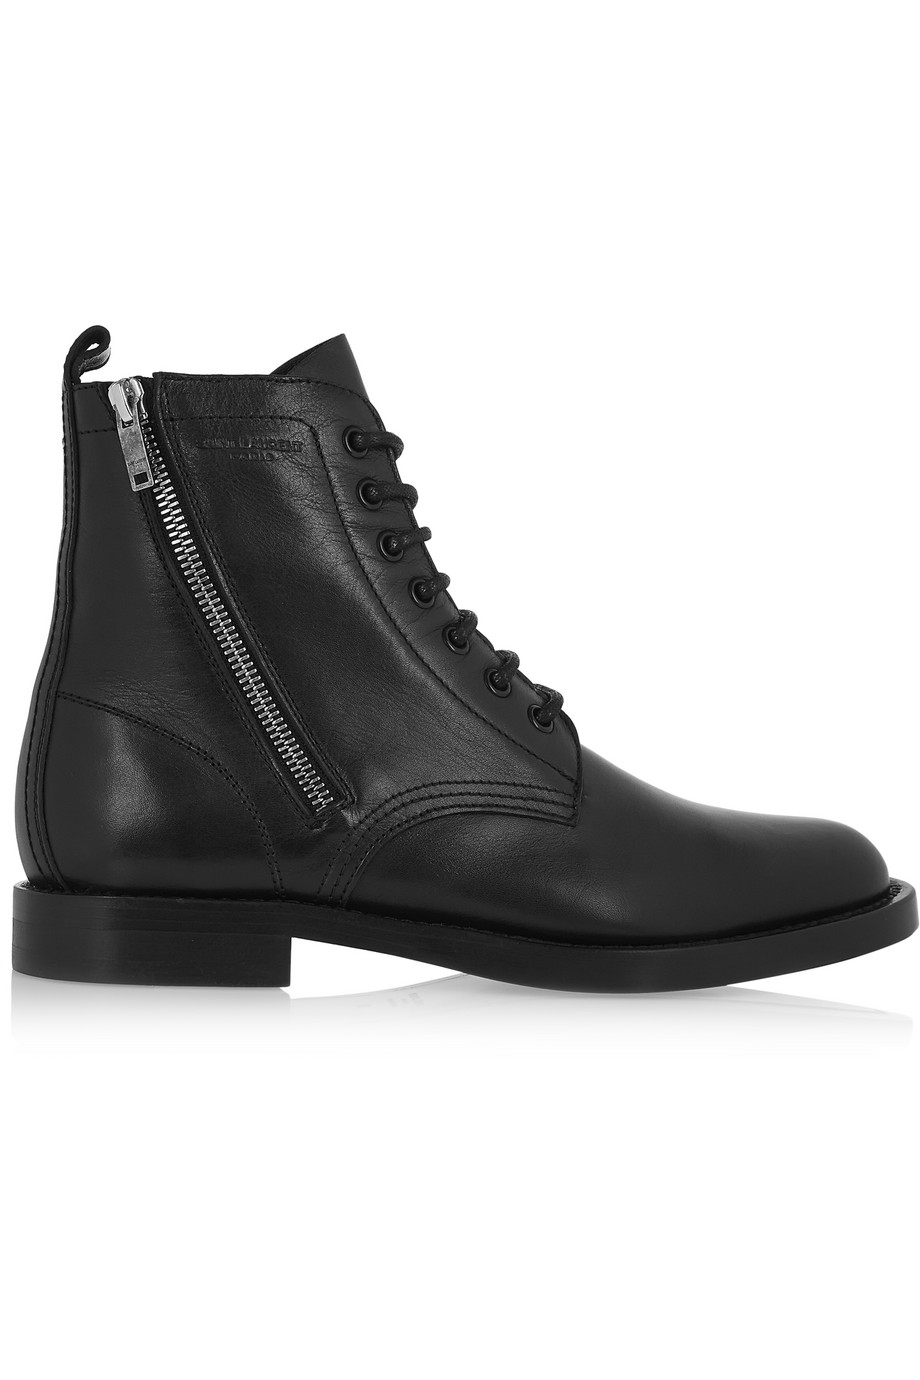 Saint Laurent Ranger Leather Boots, Black, Women's US Size: 3.5, Size: 34